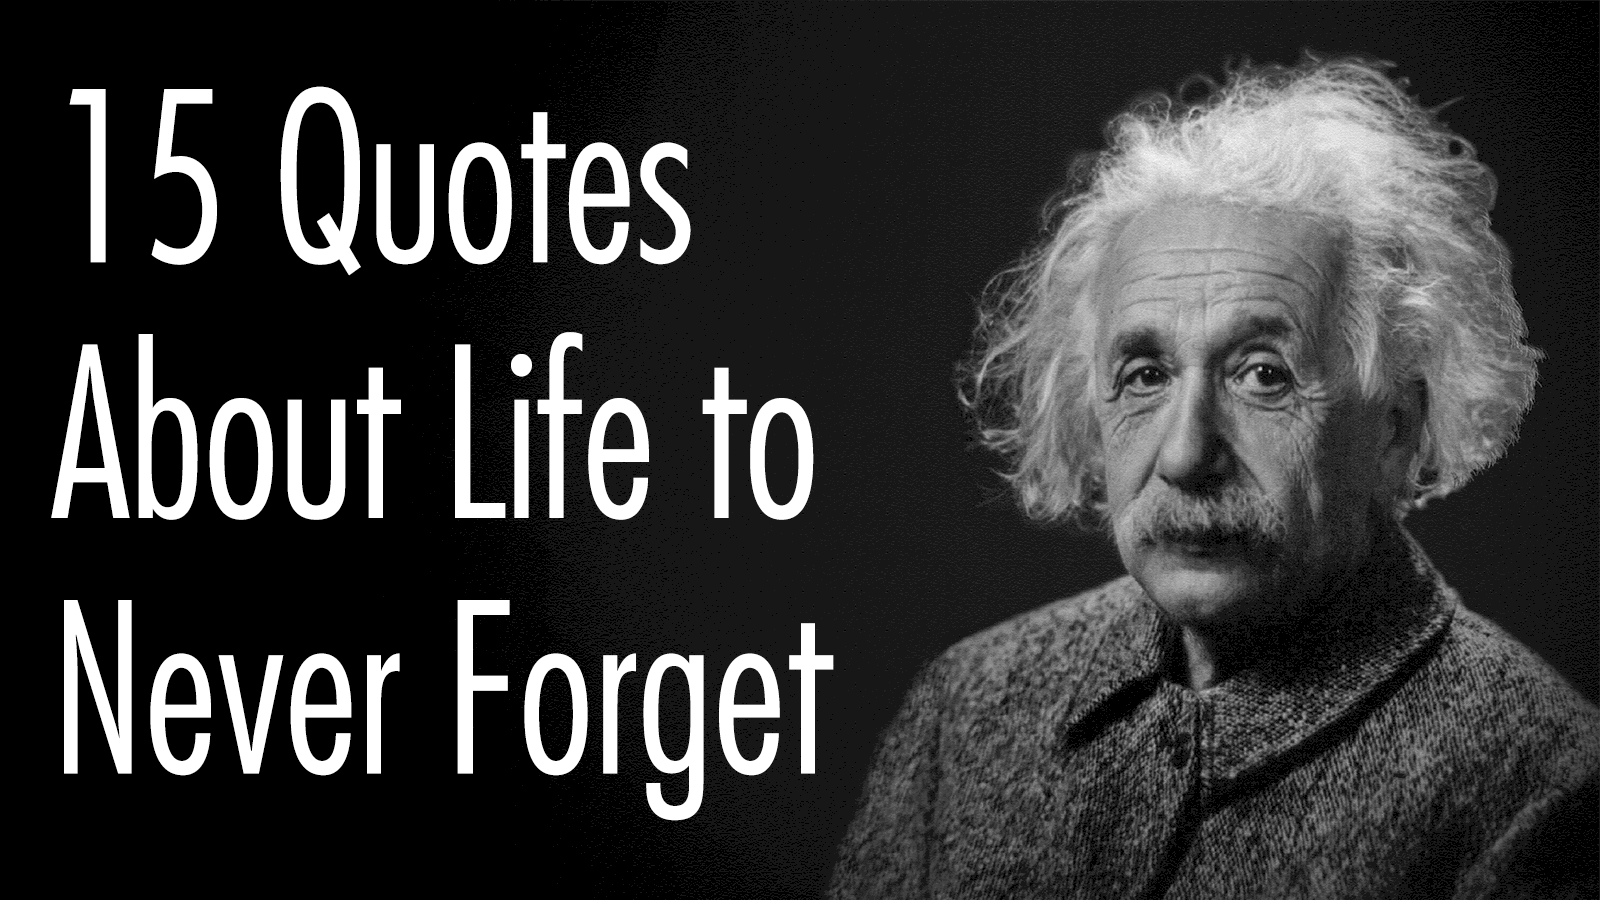 Quotes About 15 Quotes About Life to Never Forget Quotes About